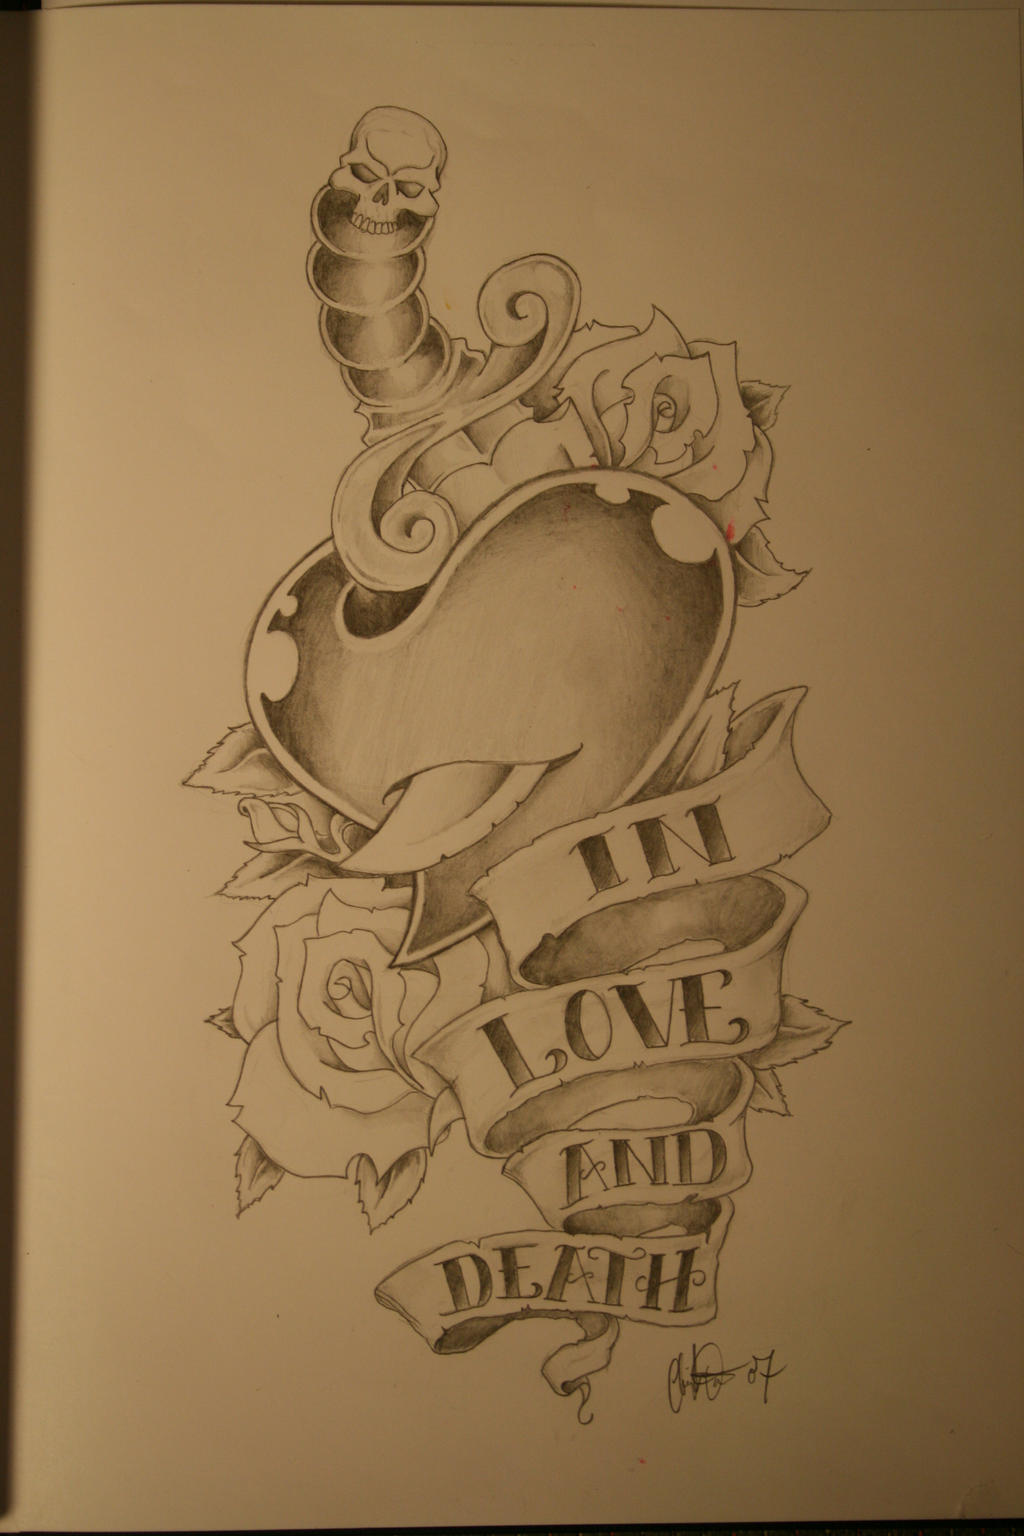 Quotes About Love And Death In Love And Death Tattoosammydavis On Deviantart